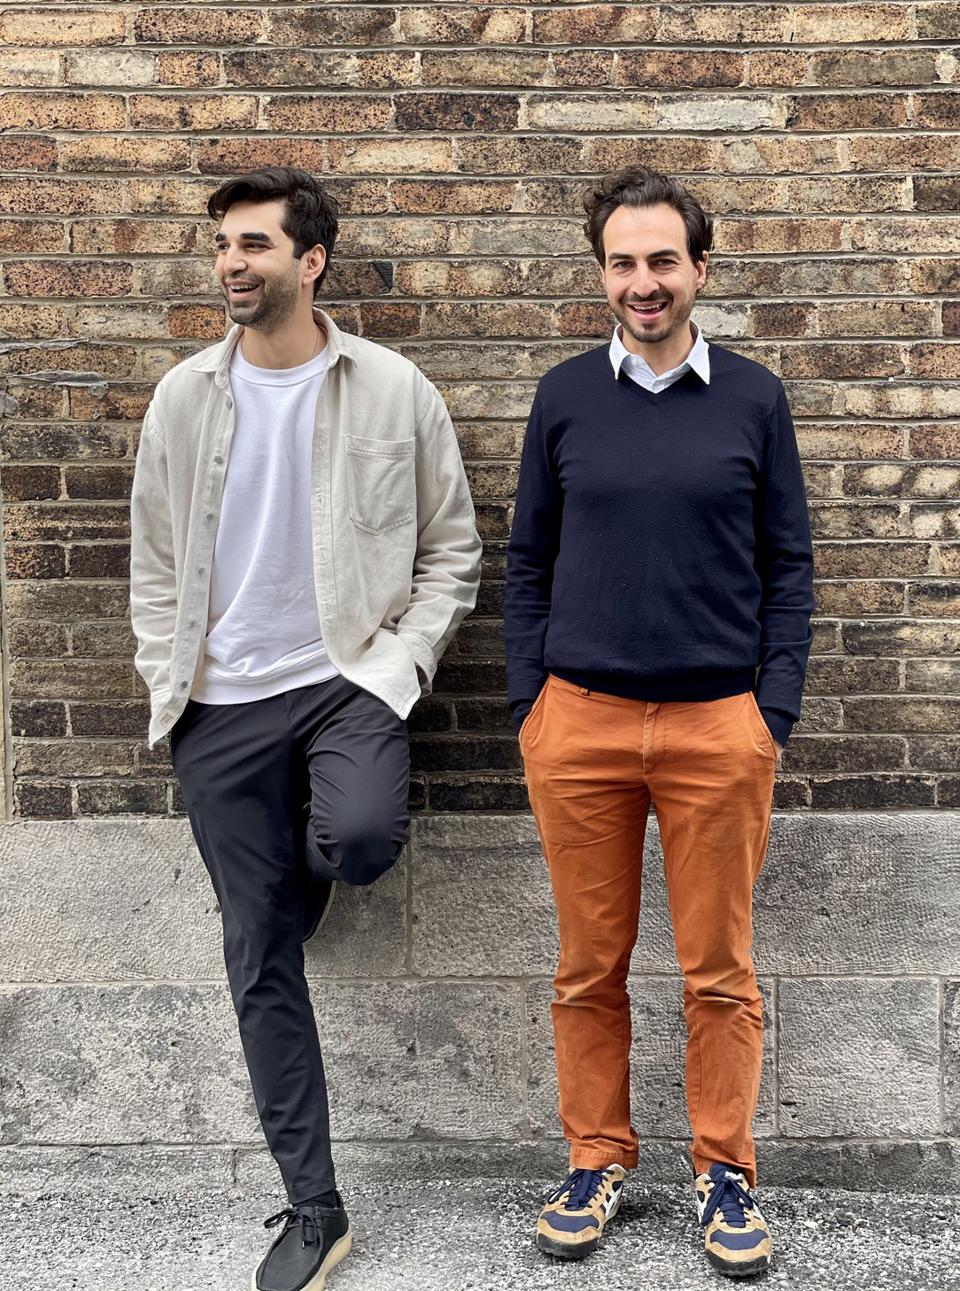 Co-founders Na'eem Adam and Thierry Rassam